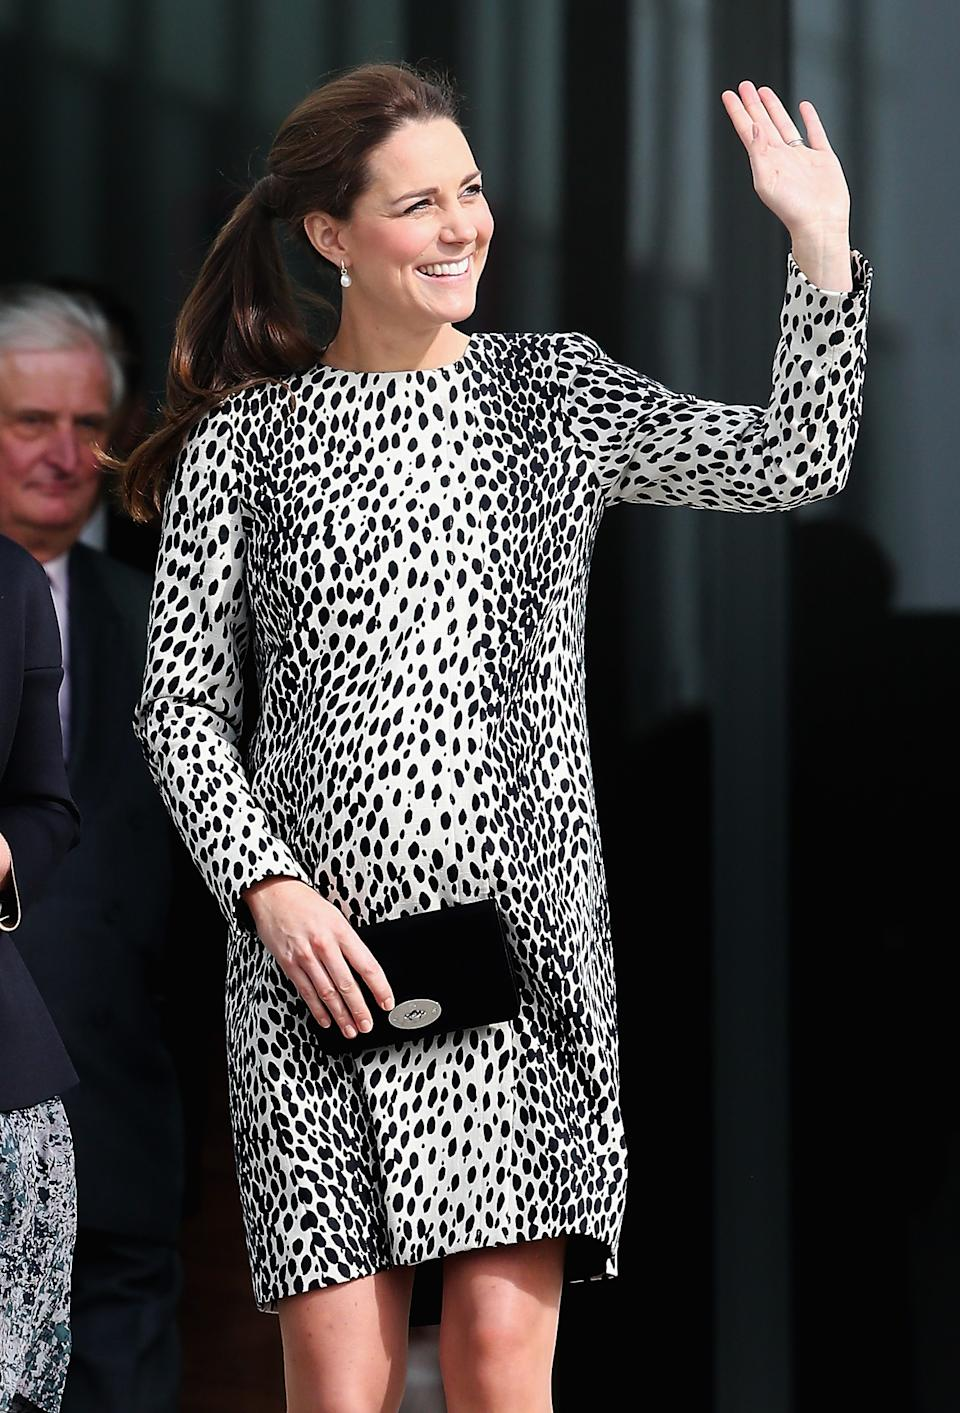 The Duchess of Cambridge visiting the Turner Contemporary gallery on March 11, 2015. (Getty Images)